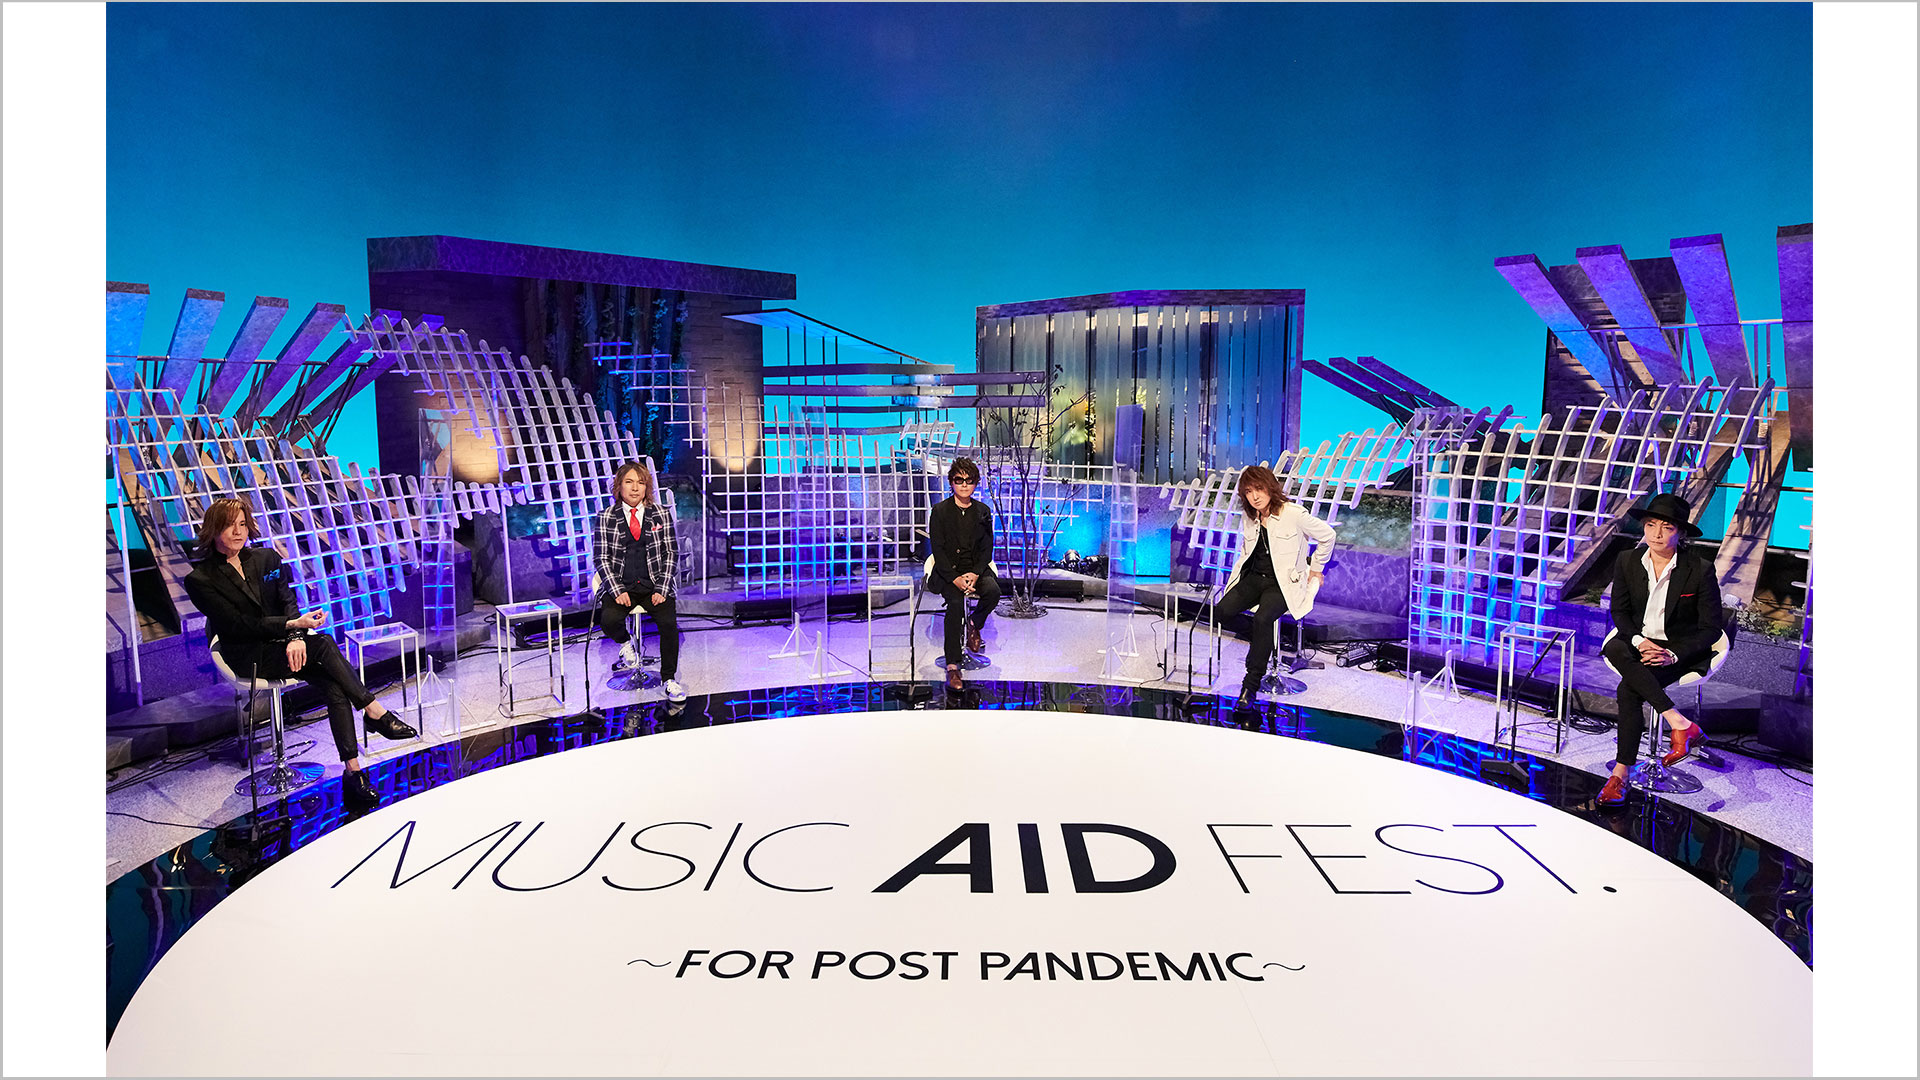 MUSIC AID FEST. ~FOR POST PANDEMIC~